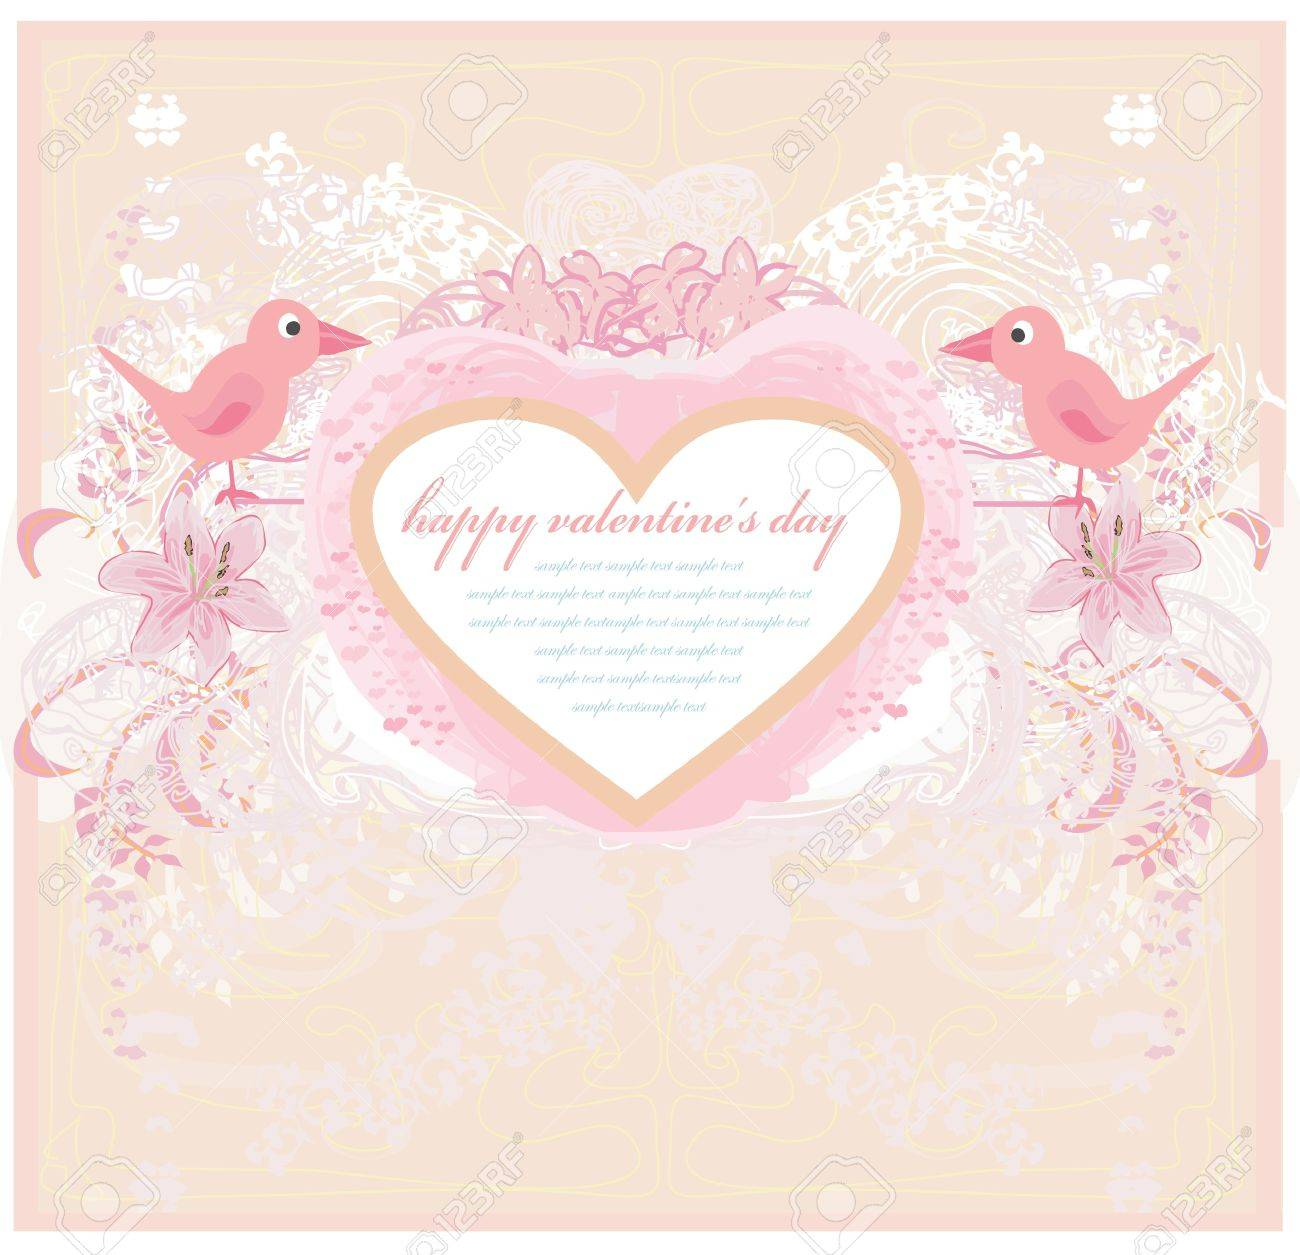 valentines day greeting card with 2 sweet love birds Stock Vector - 11563585